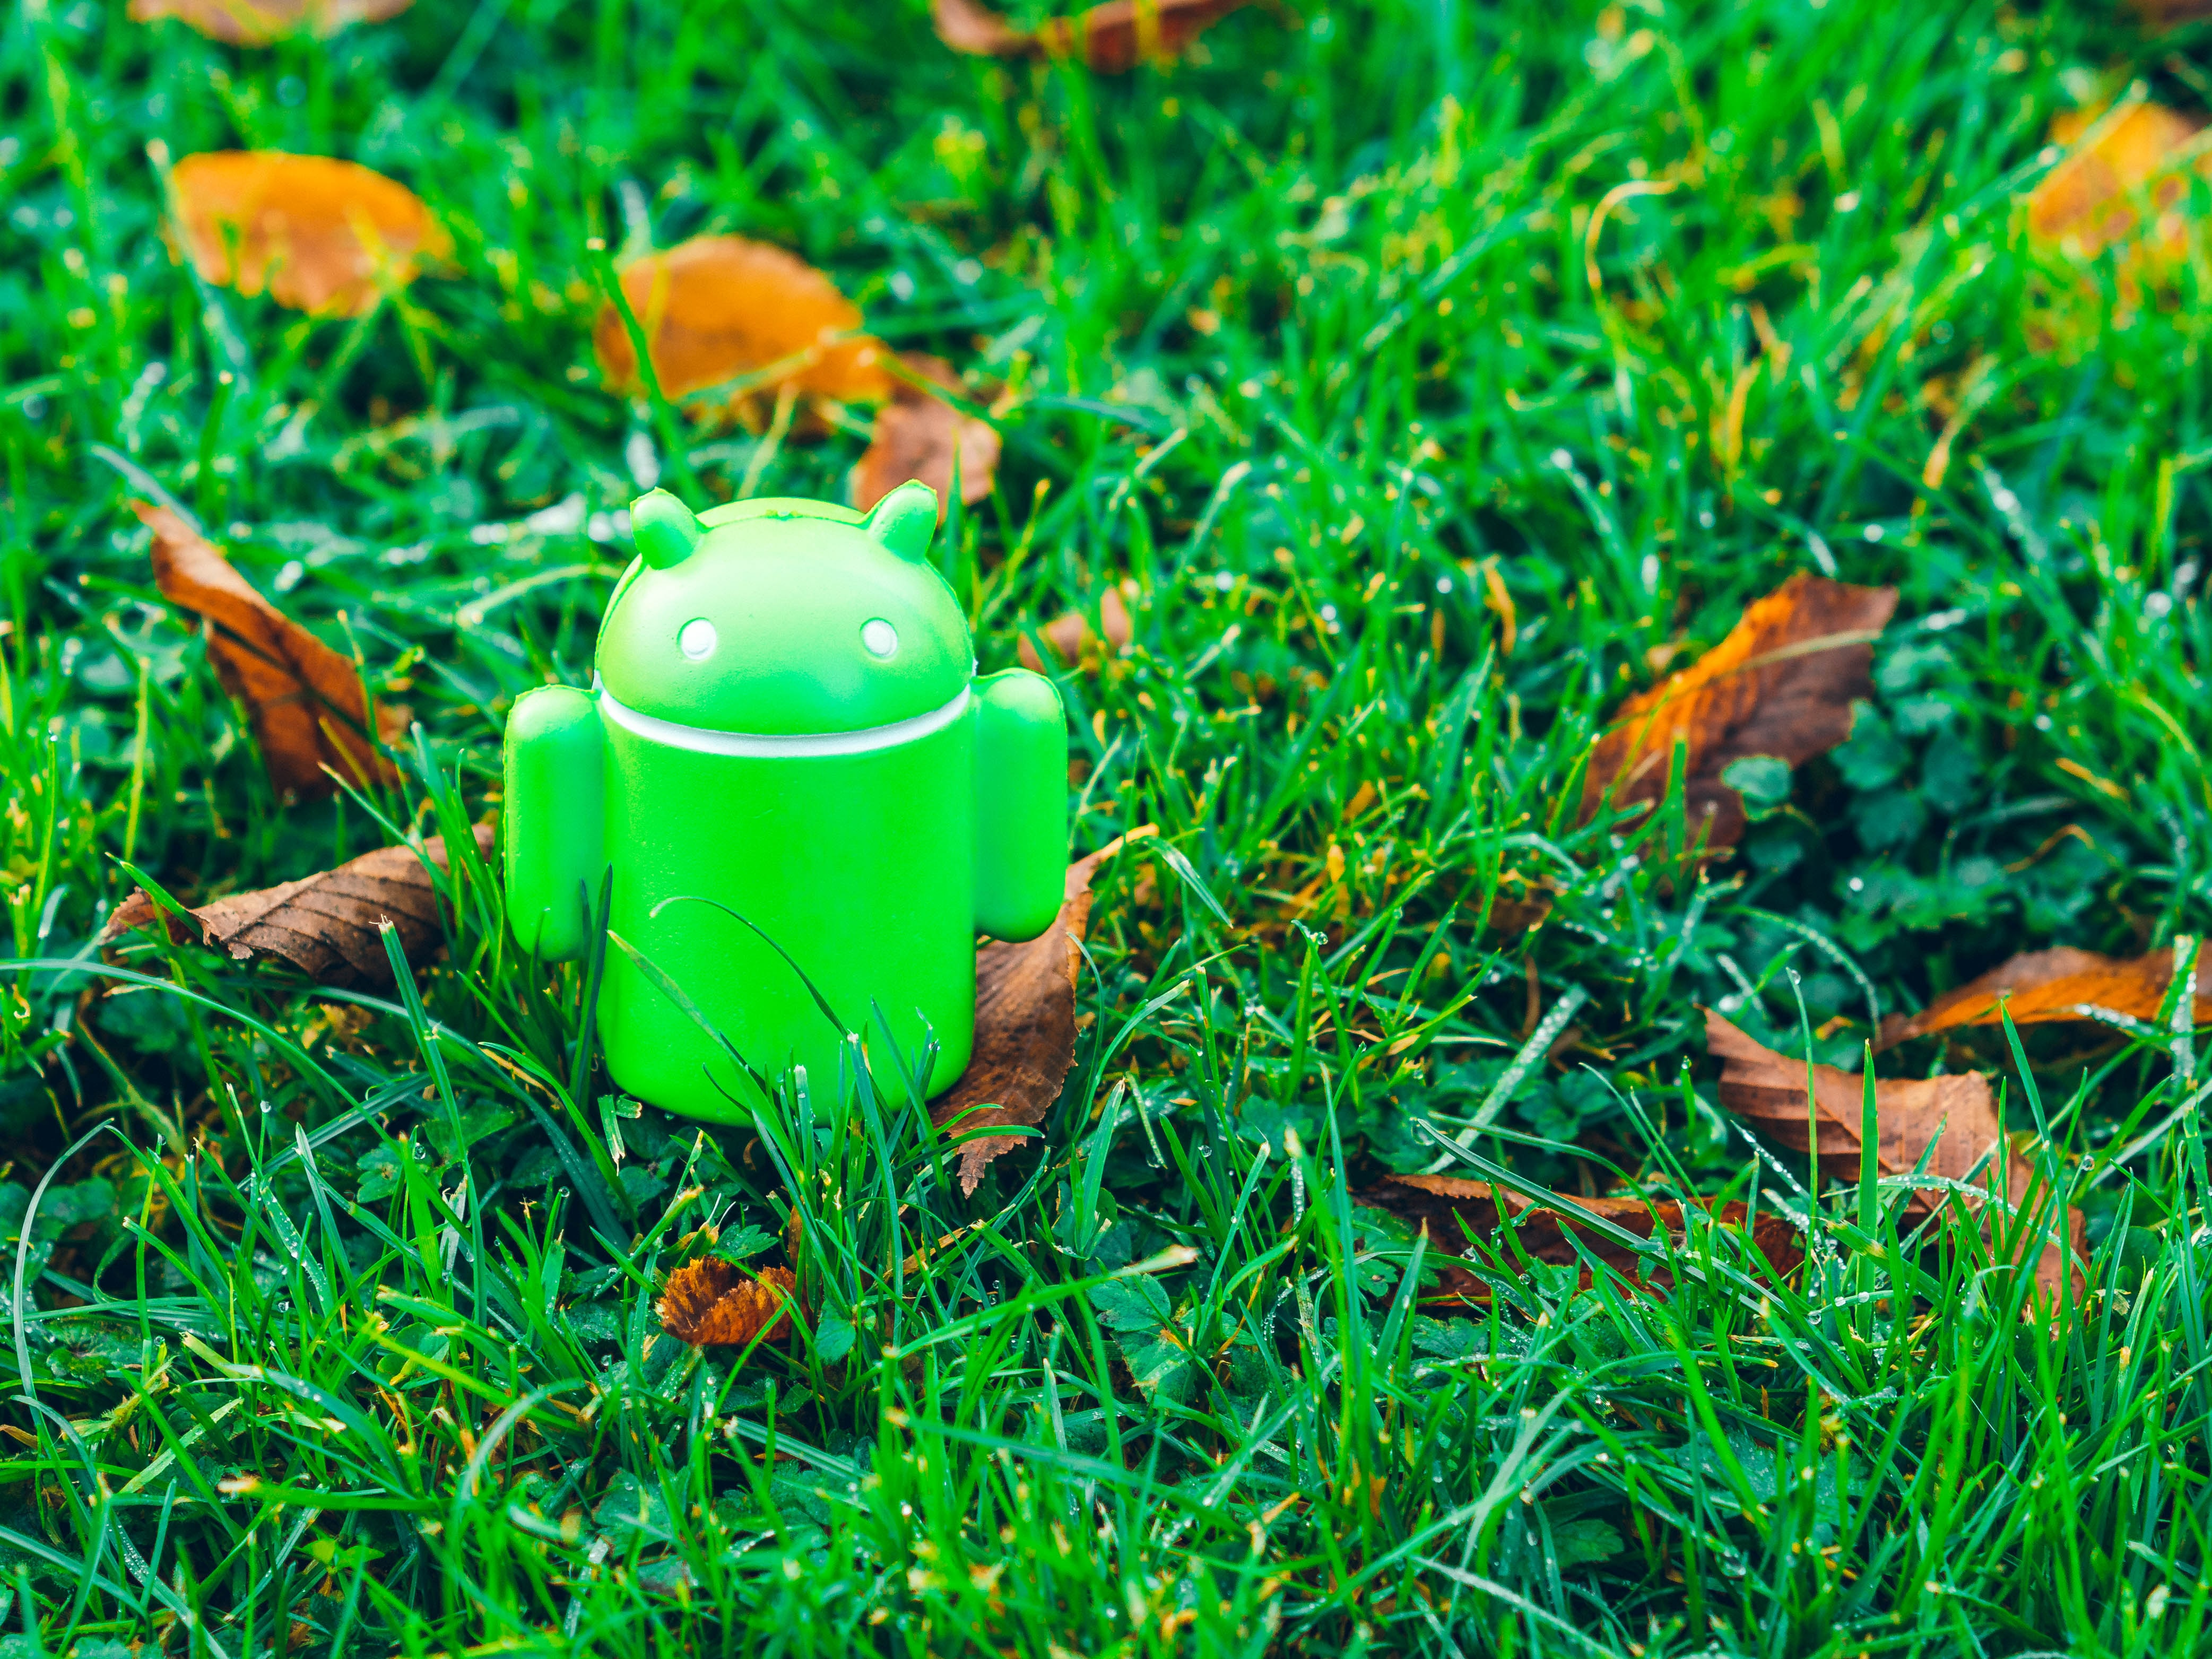 A green Android figurine on a lawn